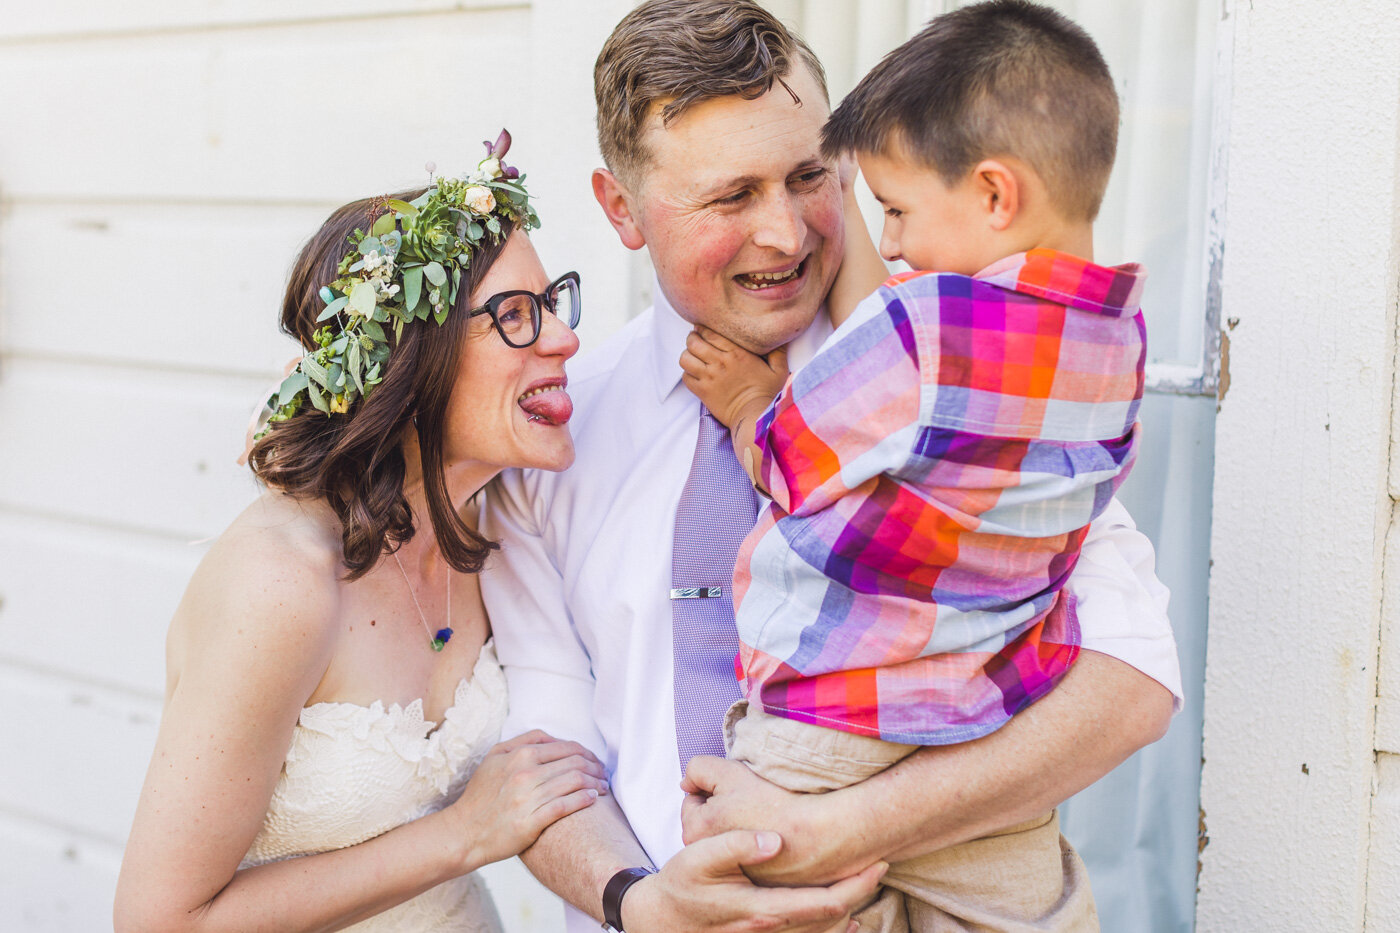 bride-and-groom-having-fun-with-child